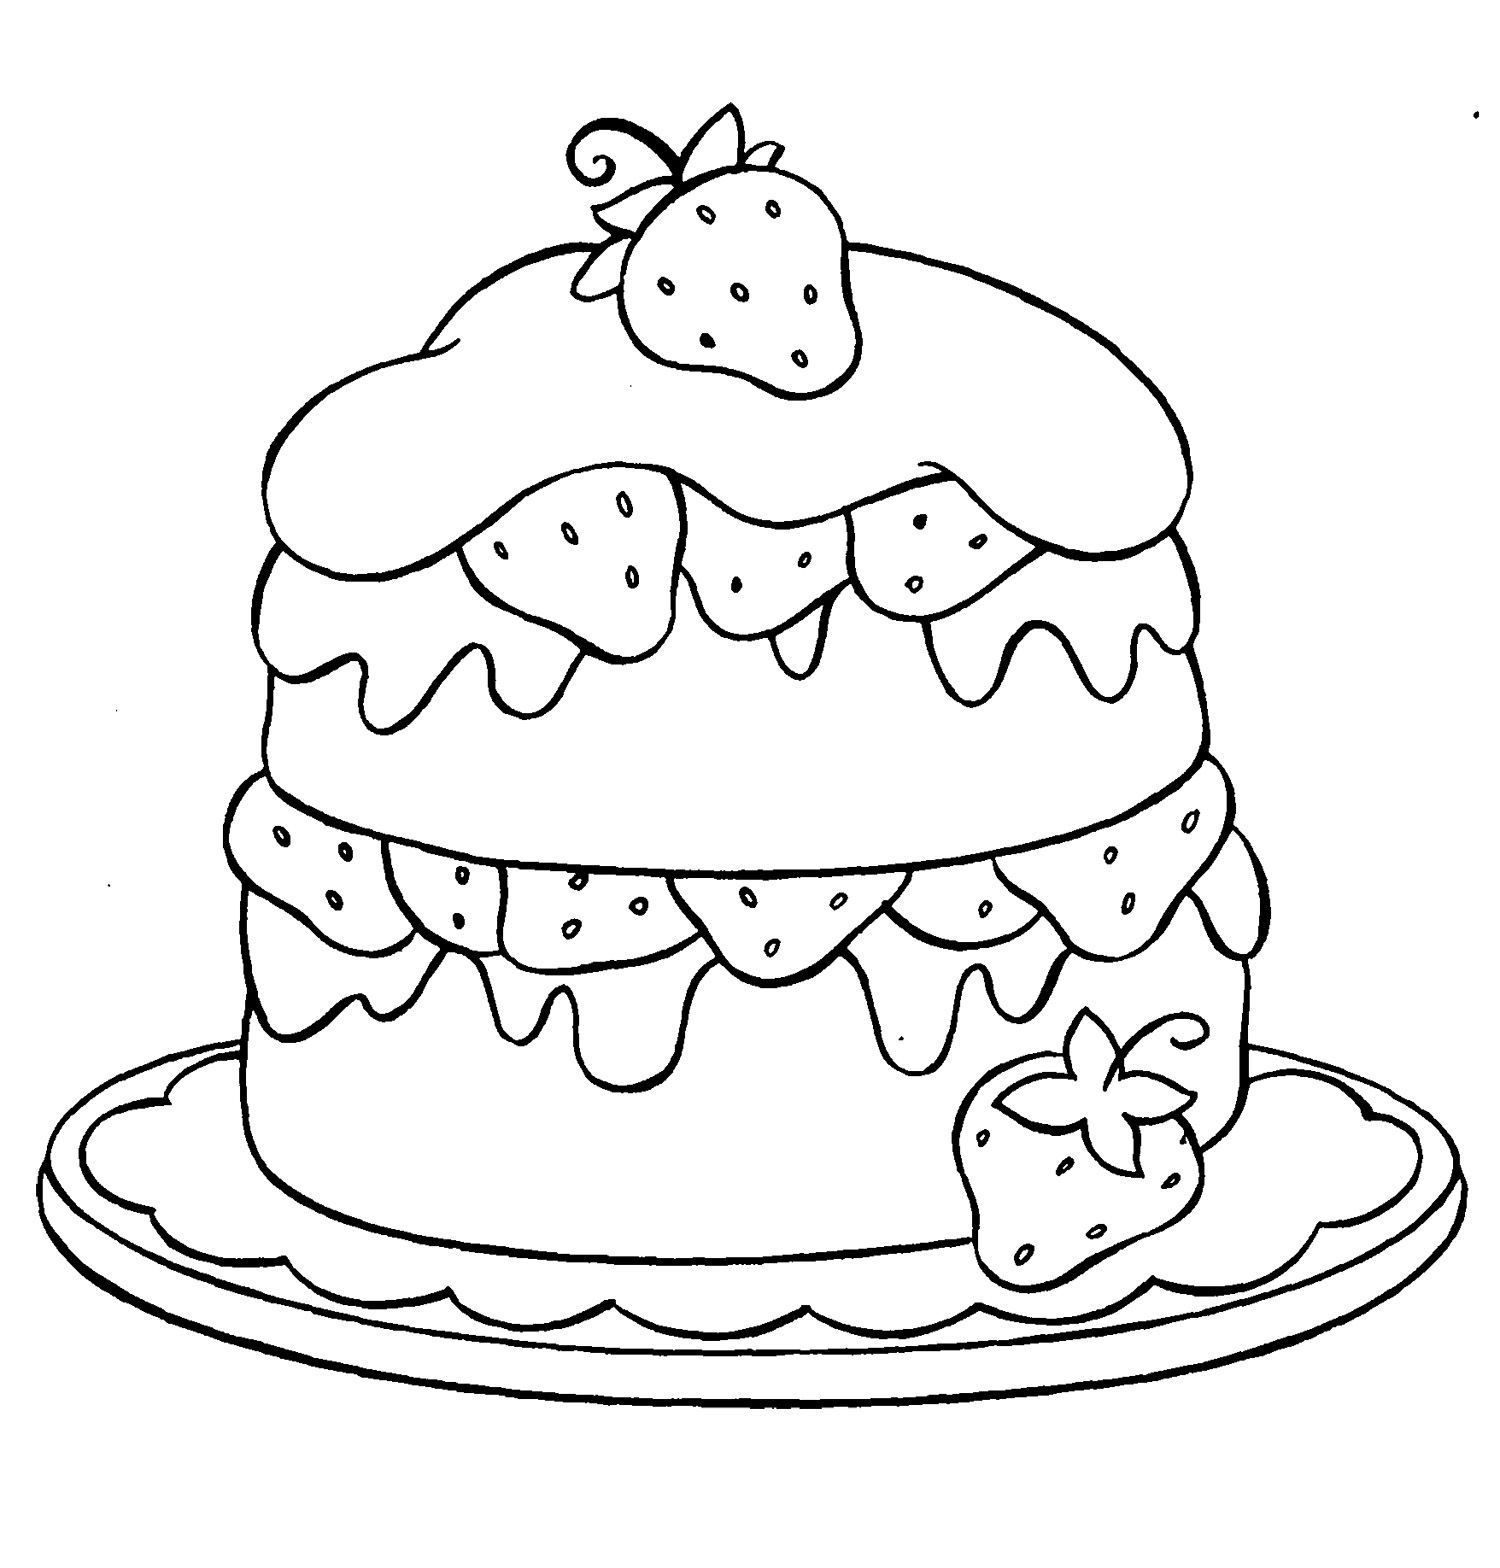 Drawing Cake Colour Strawberry Coloring Pages Best Coloring Pages For Kids